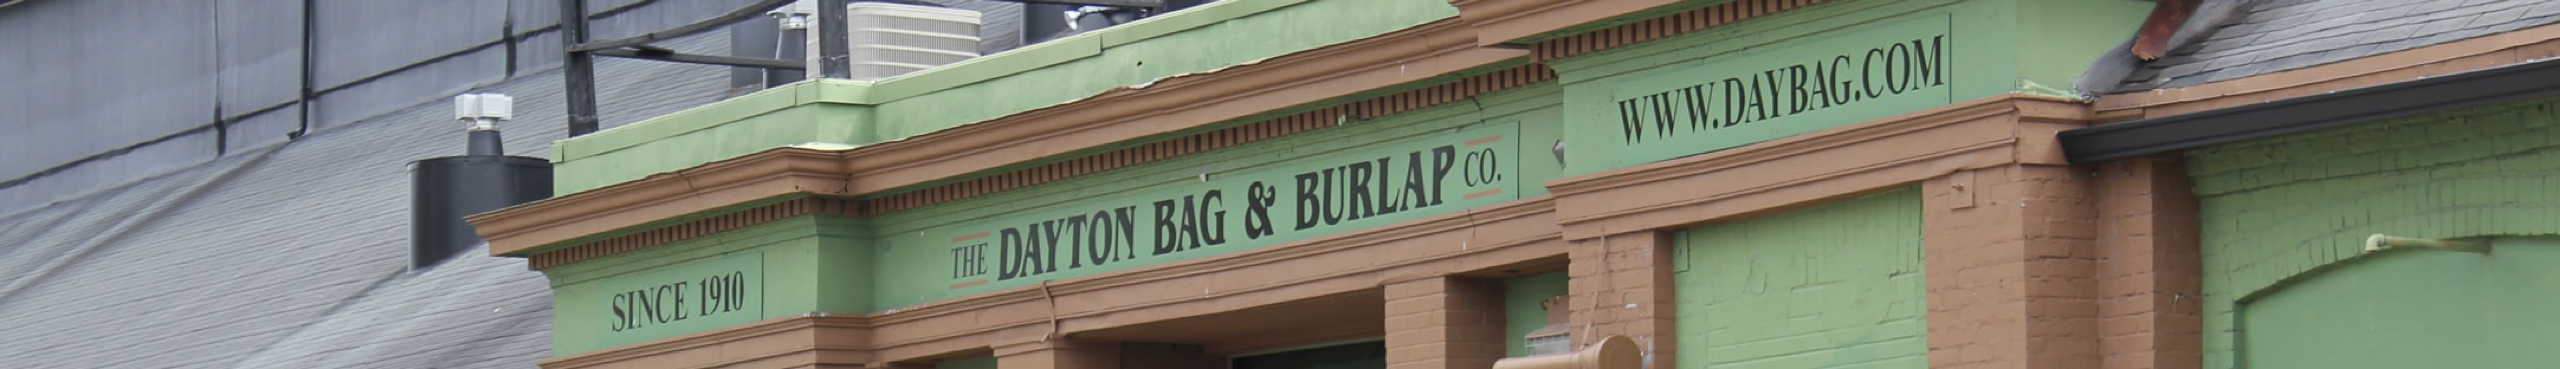 Dayton Bag & Burlap Locations Cover